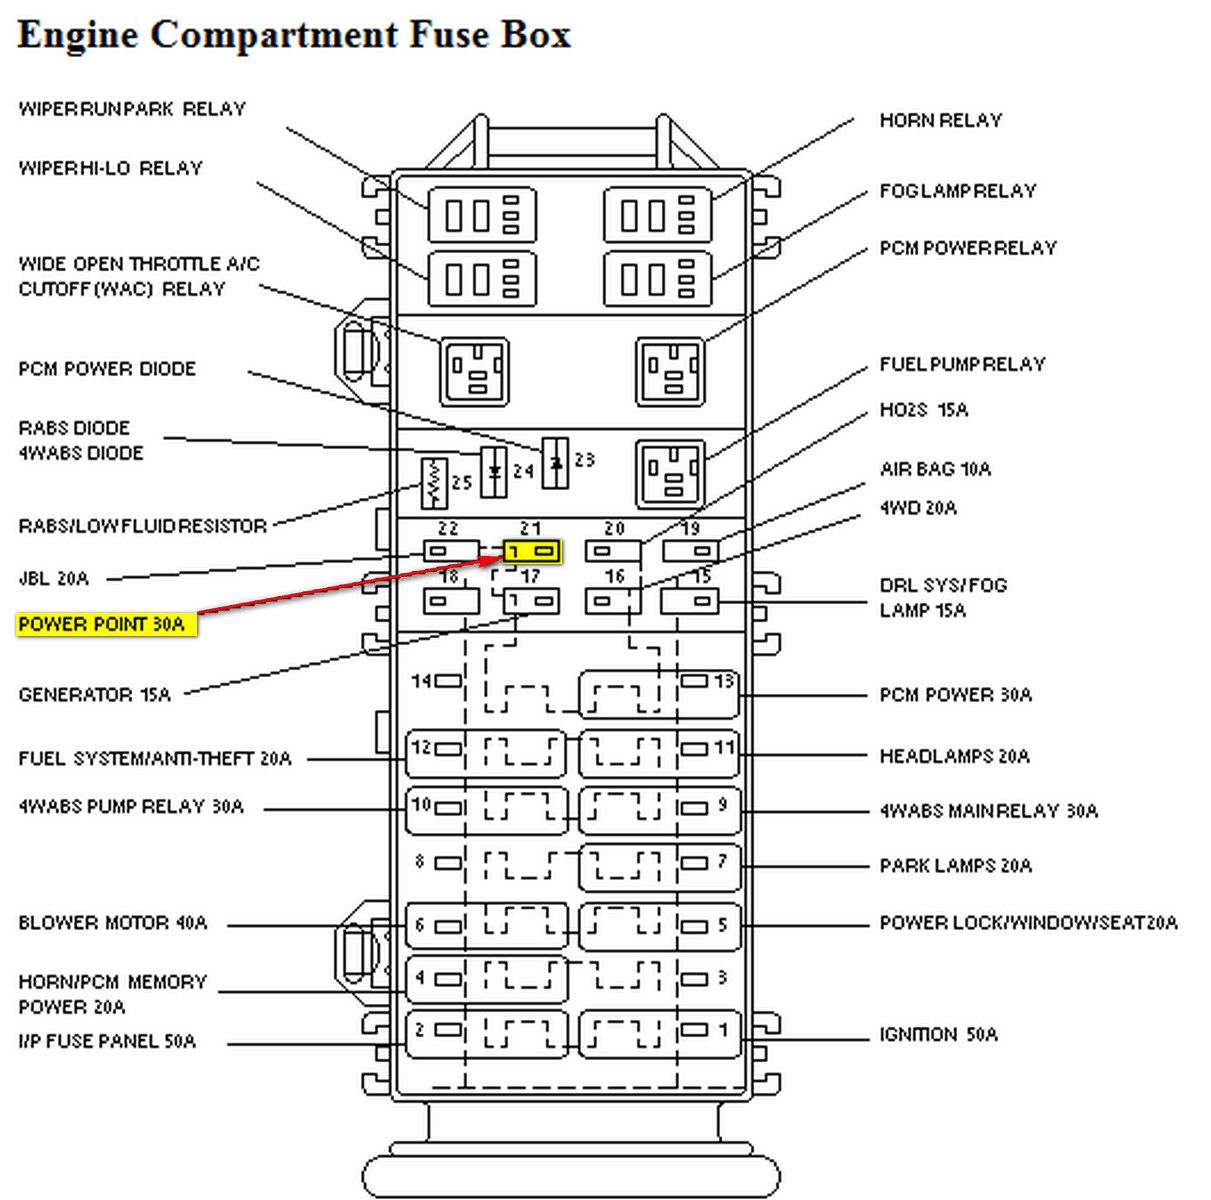 8a55967da7ae1bd251b795845886bd24 2002 ford ranger fuse diagram 1997 ford ranger fuse box diagram 2001 ford ranger fuse diagram at mifinder.co